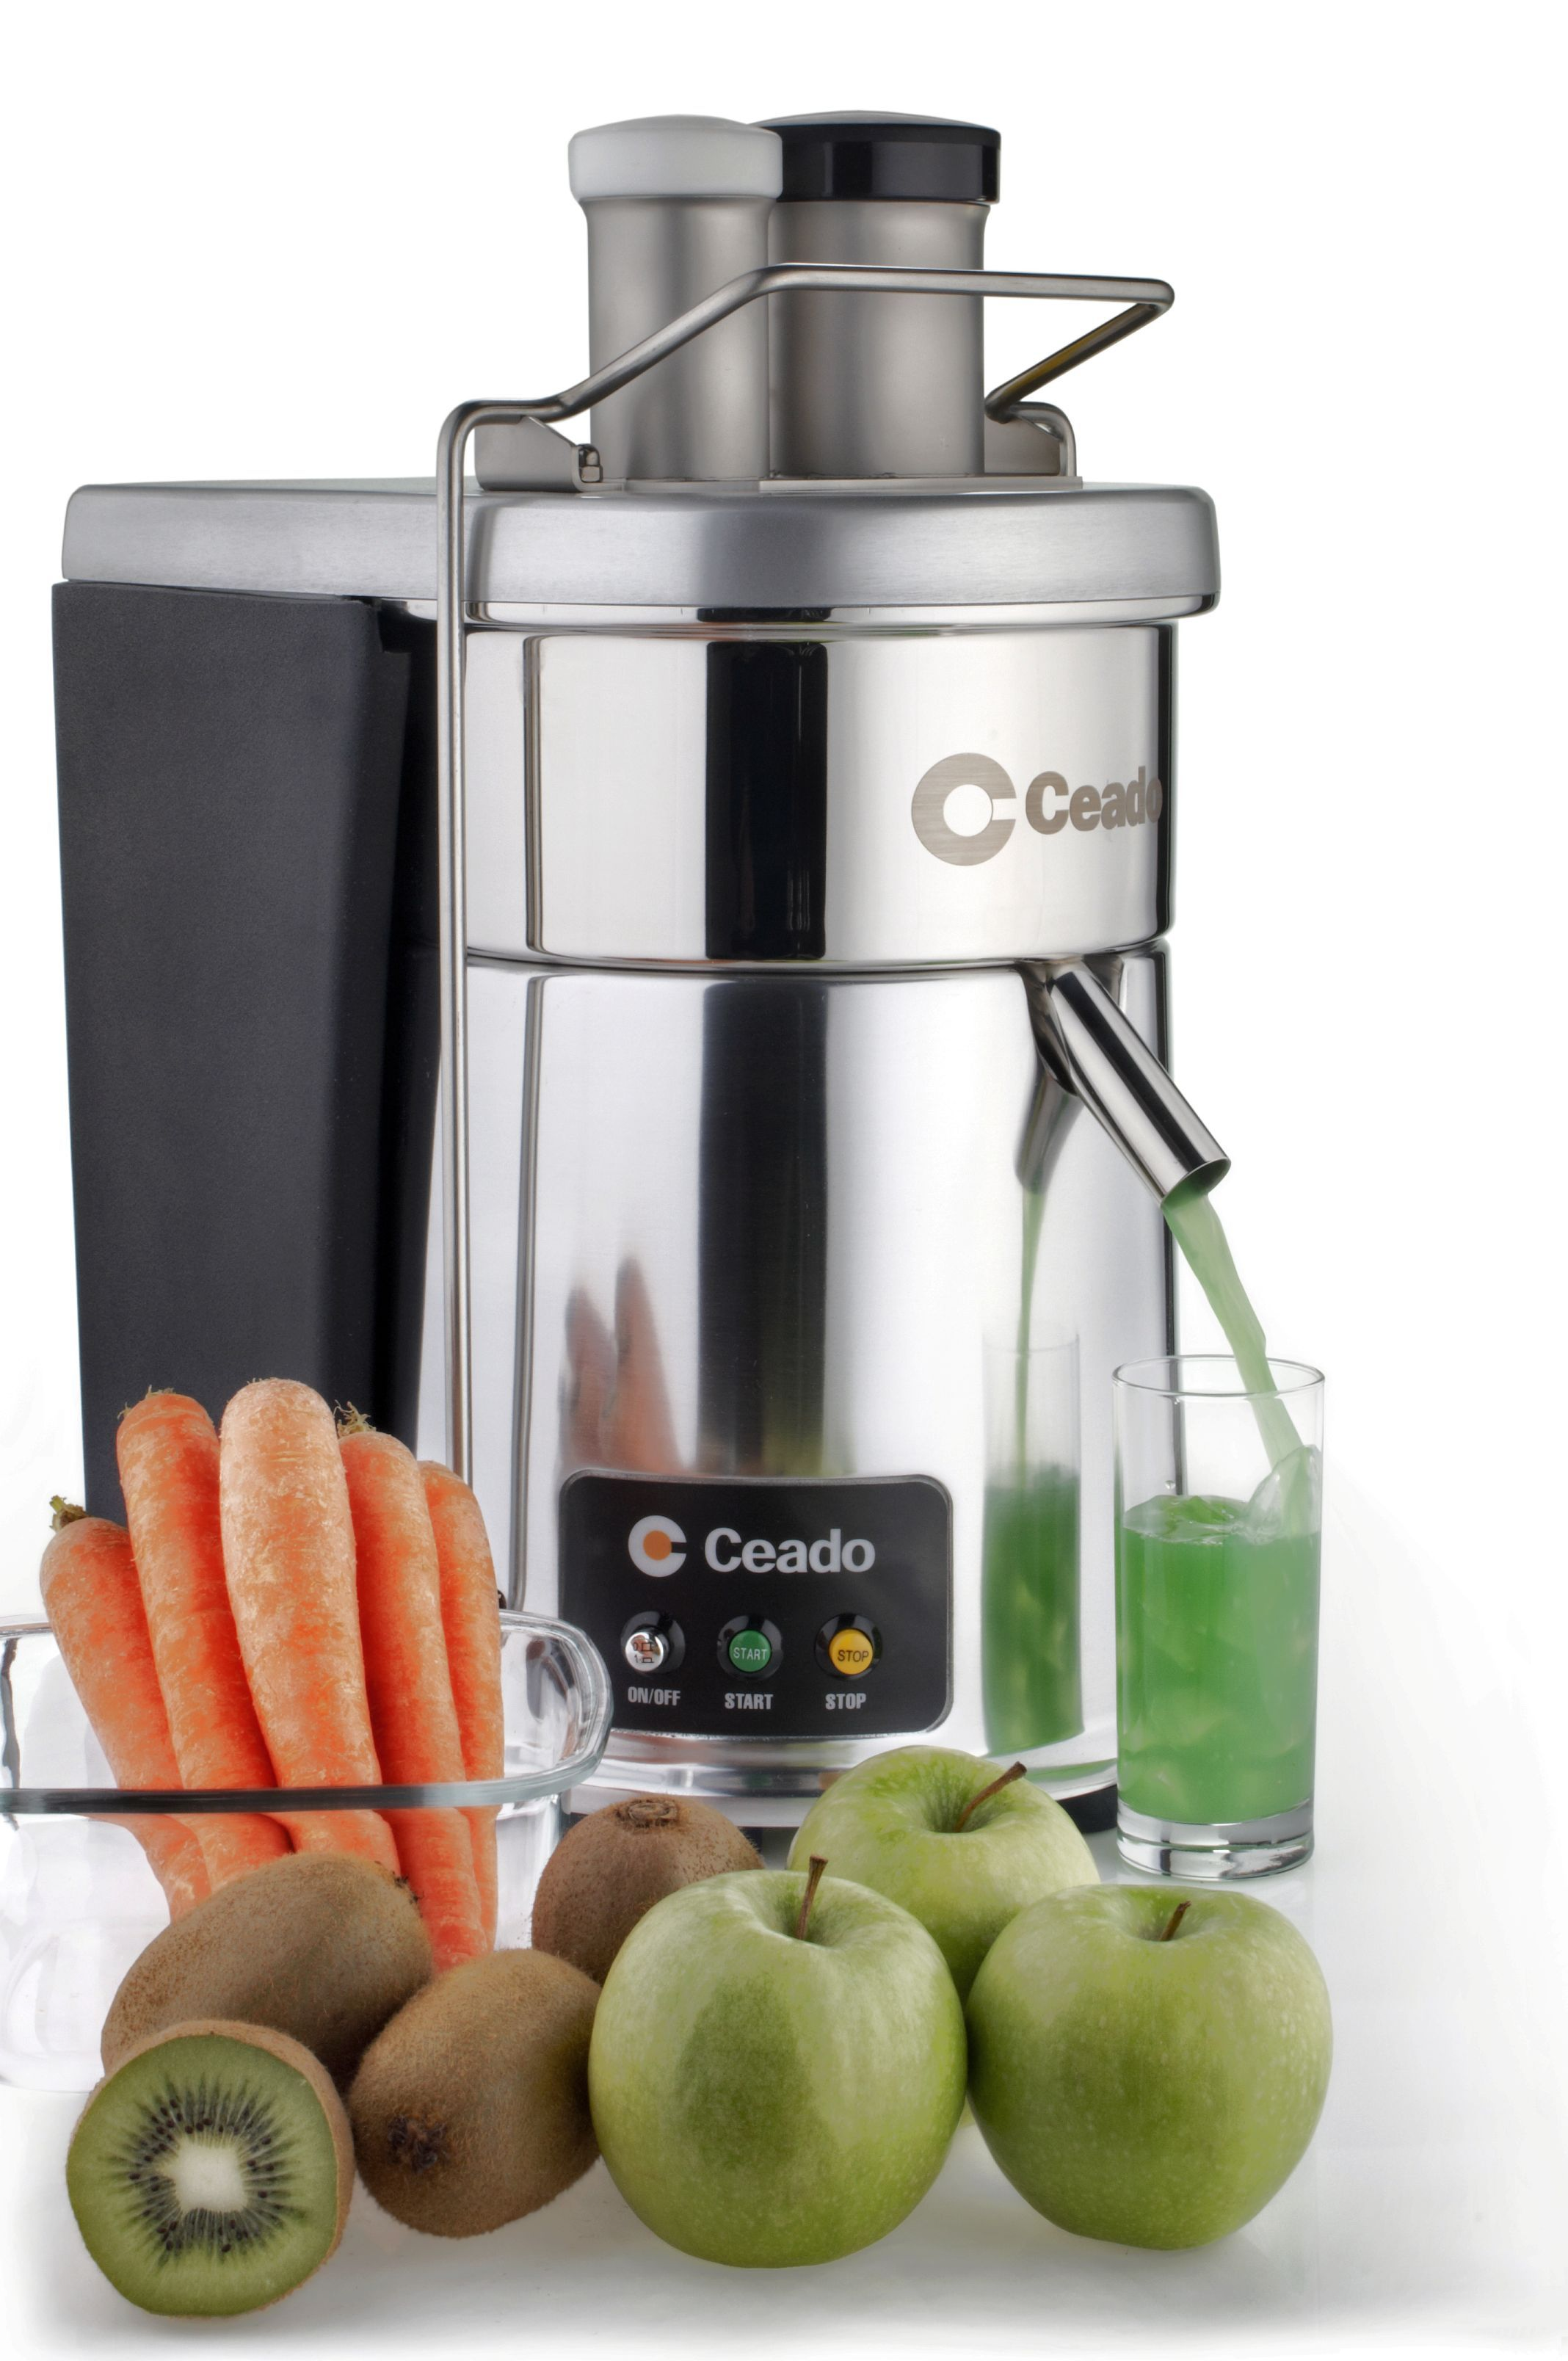 ES700 Commercial juice extractor, designed for the